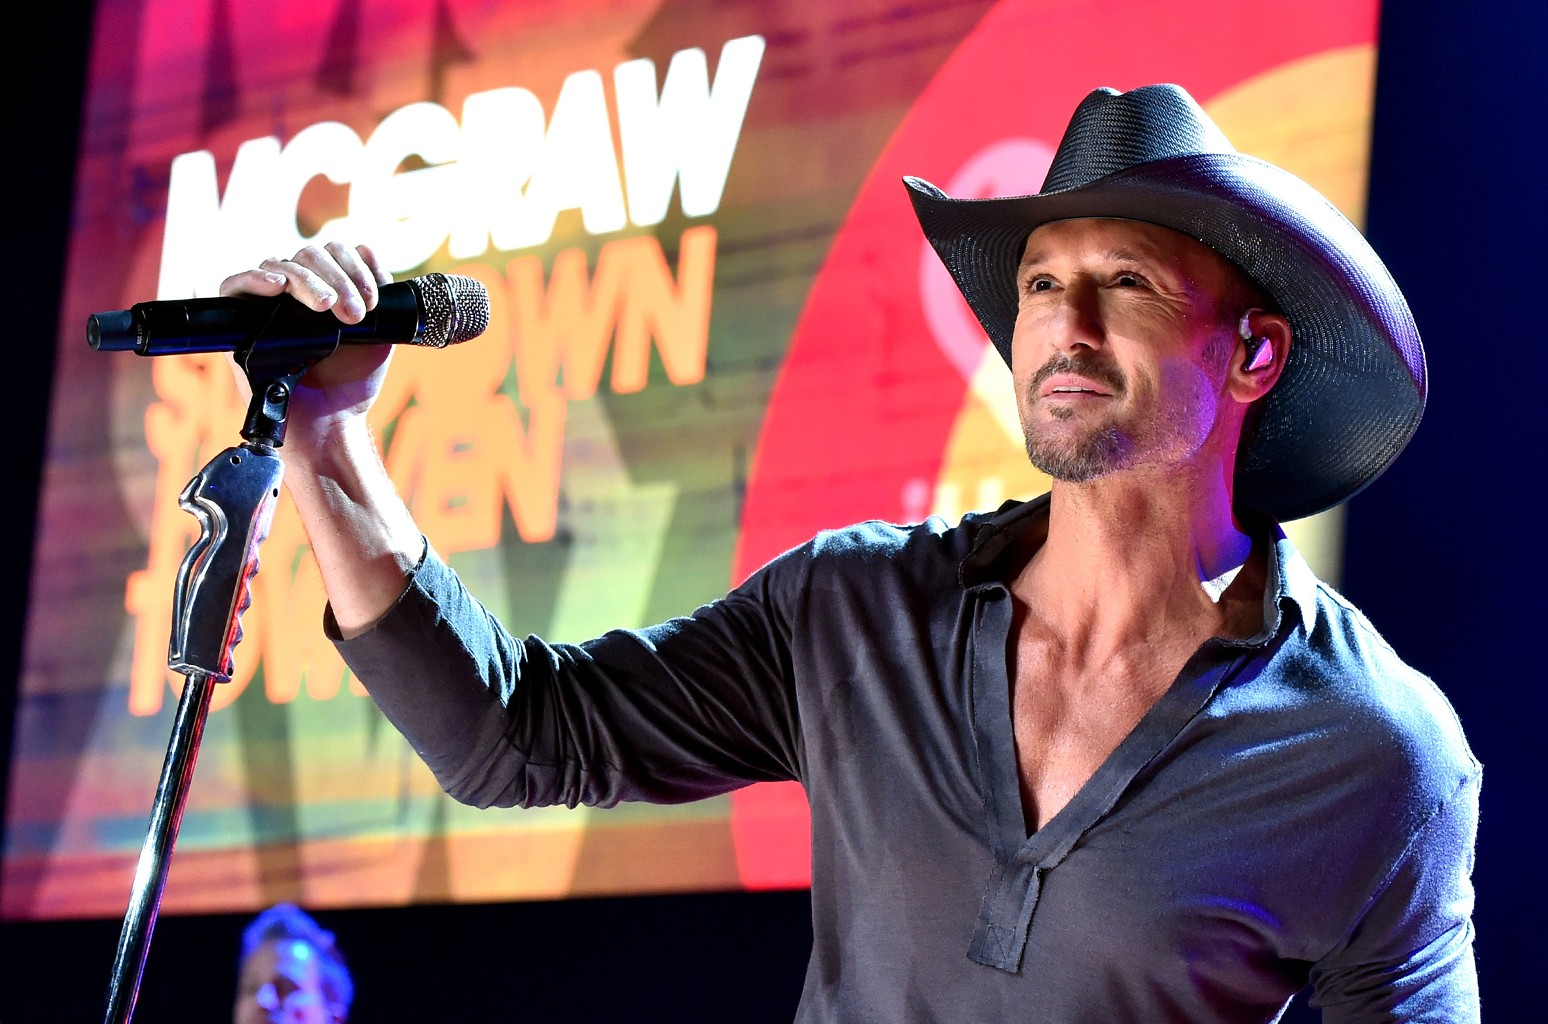 Tim McGraw performs at the iHeartRadio Theater on Oct. 15, 2014 in Burbank, Calif.